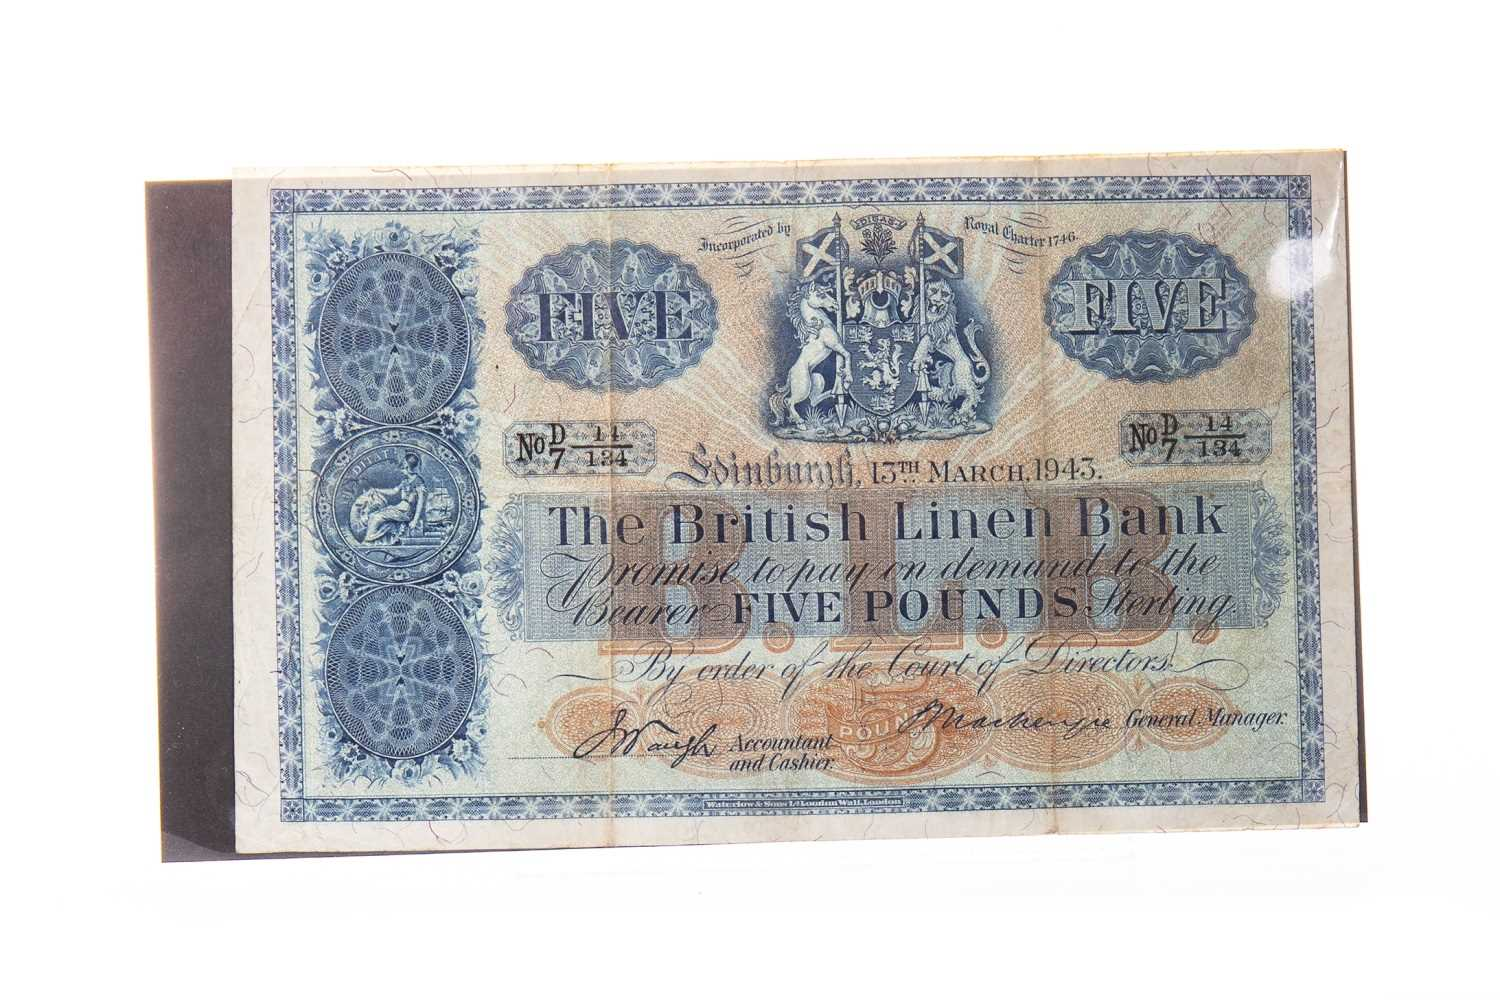 Lot 510 - A THE BRITISH LINEN BANK £5 FIVE POUNDS NOTE 1943